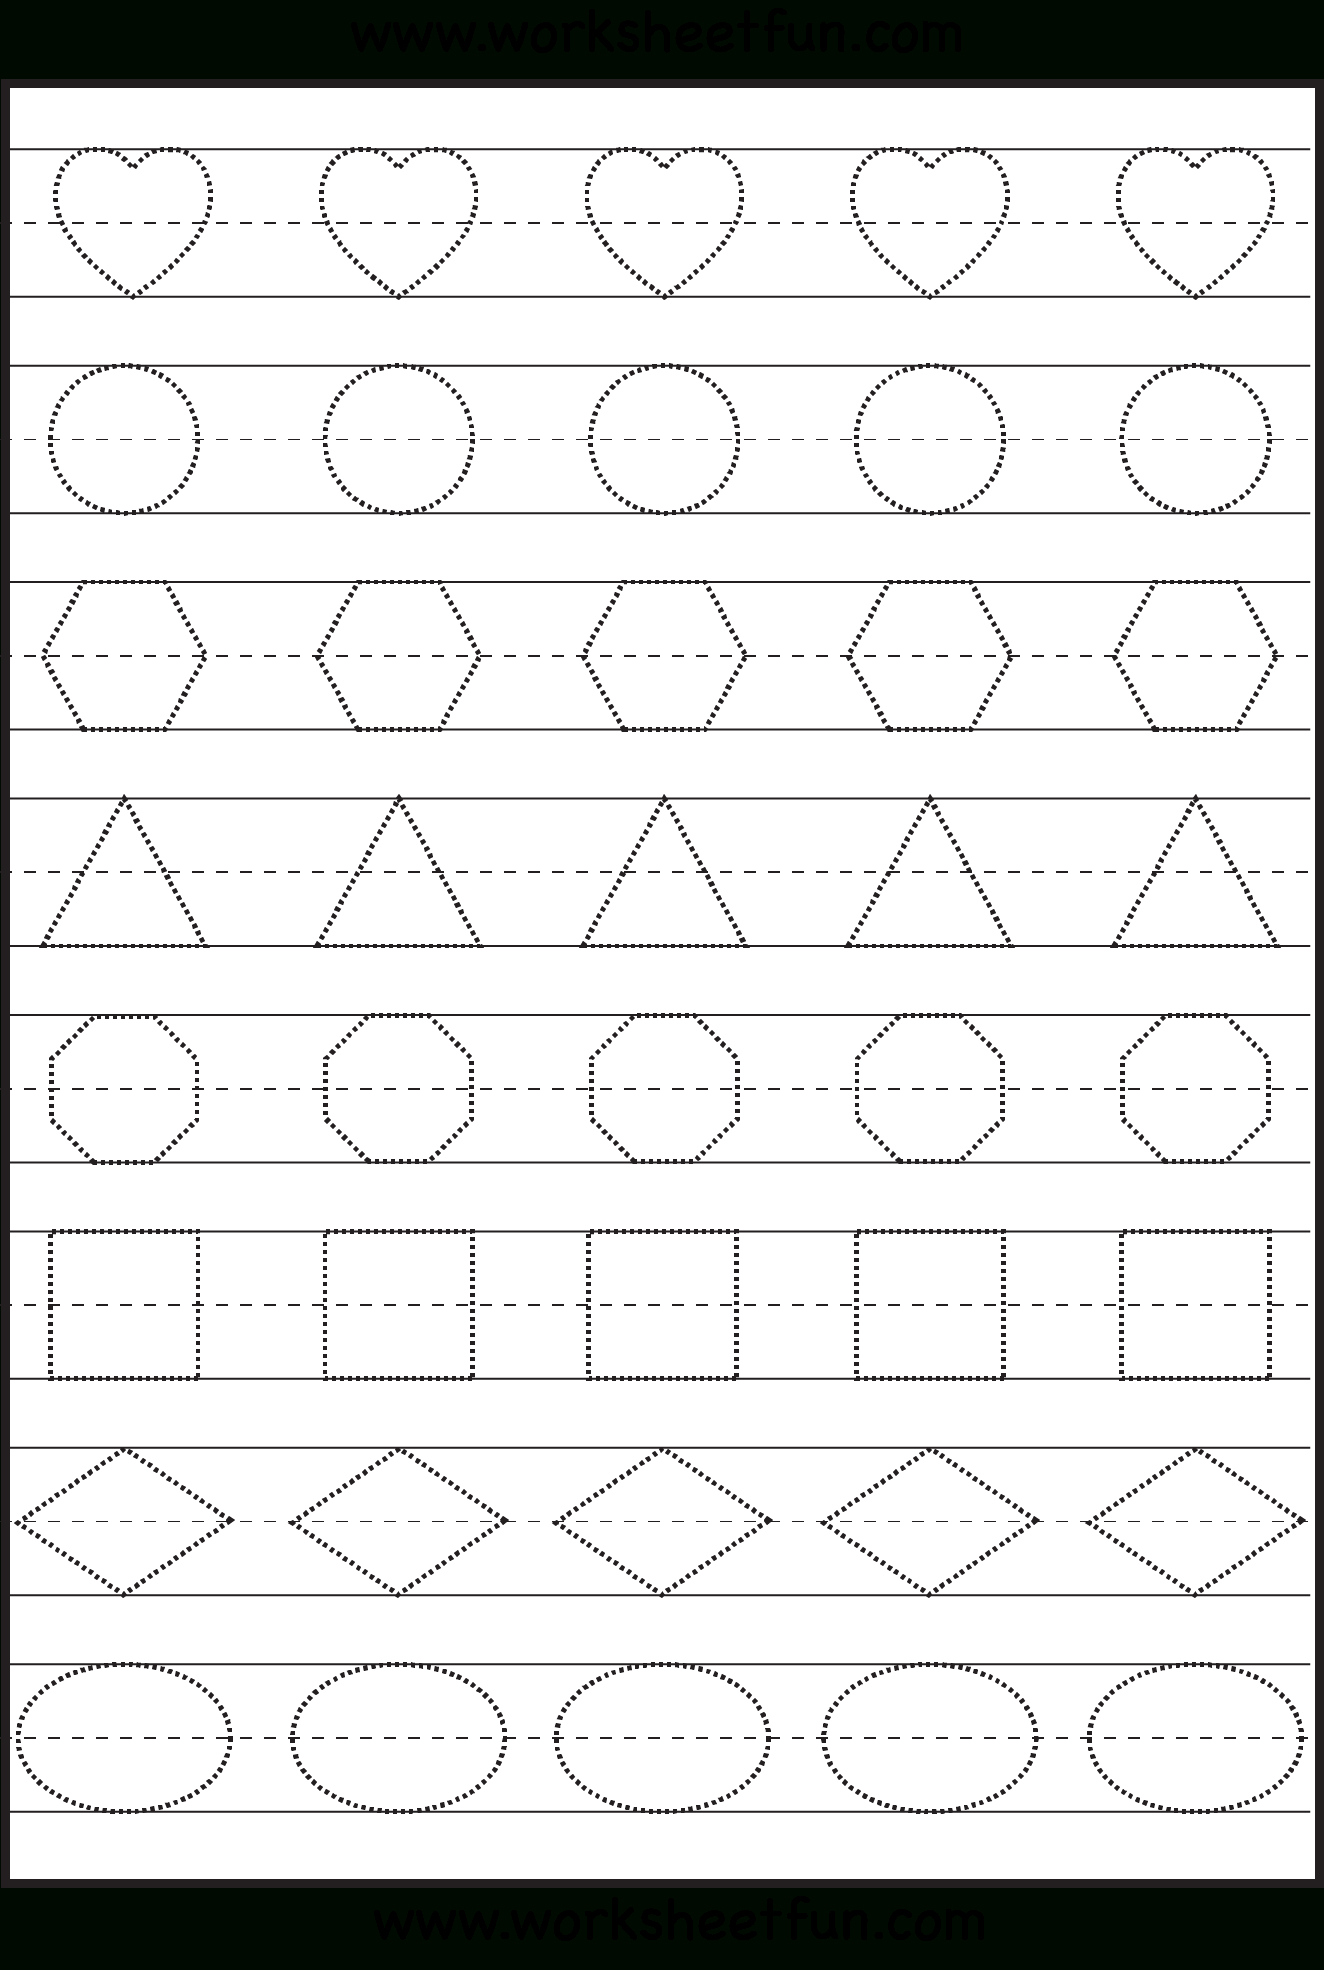 Shape Tracing, Letters & More - Lots Of Preschool Tracing intended for Practice Tracing Letters Preschool